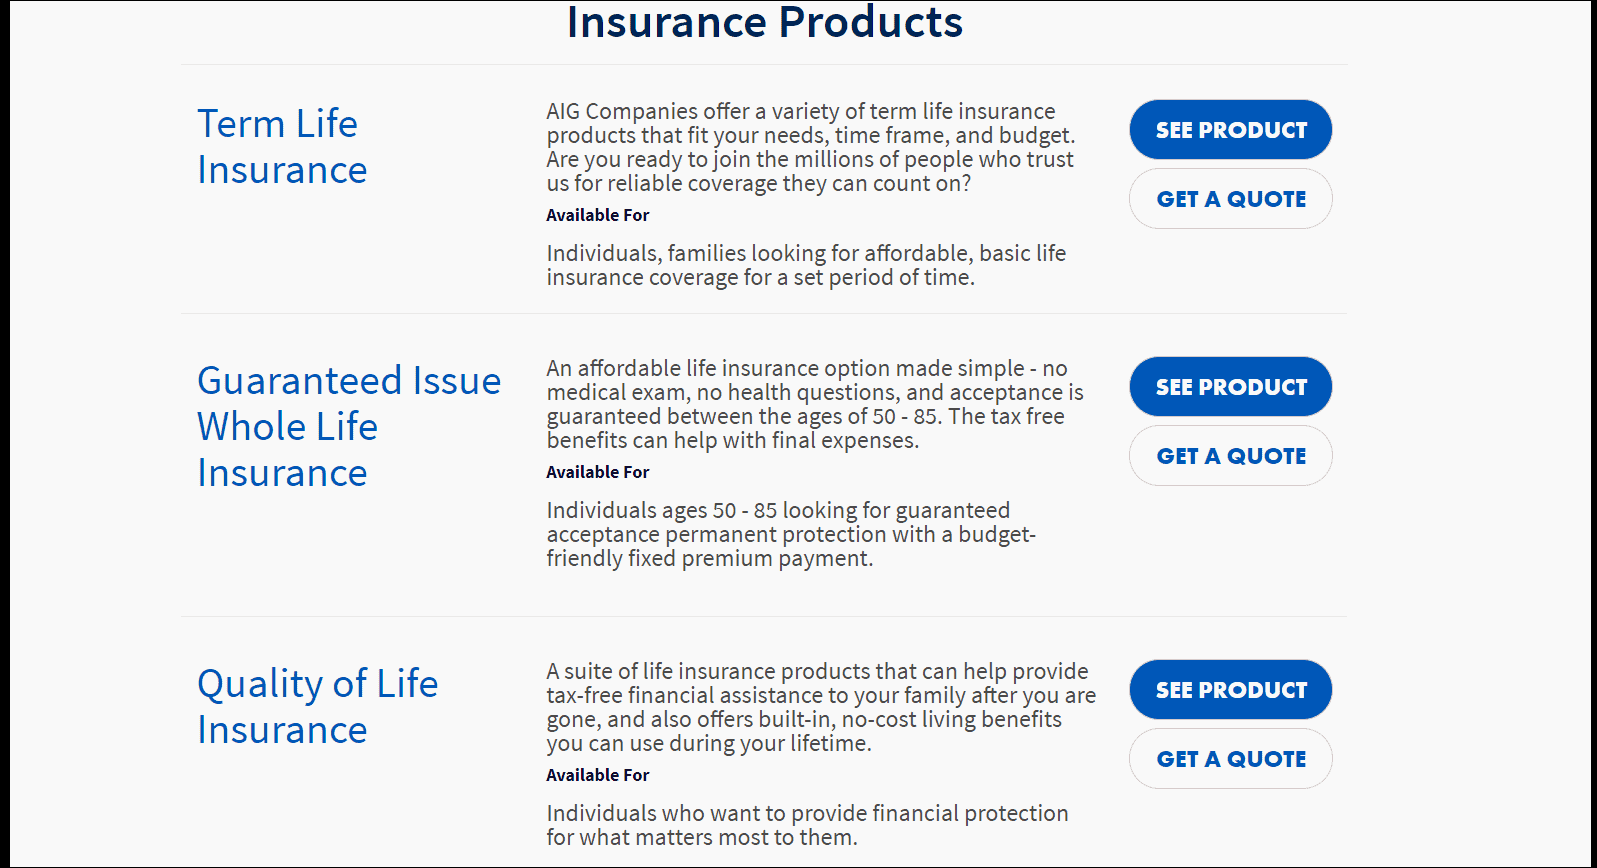 AIG Life Insurance Products